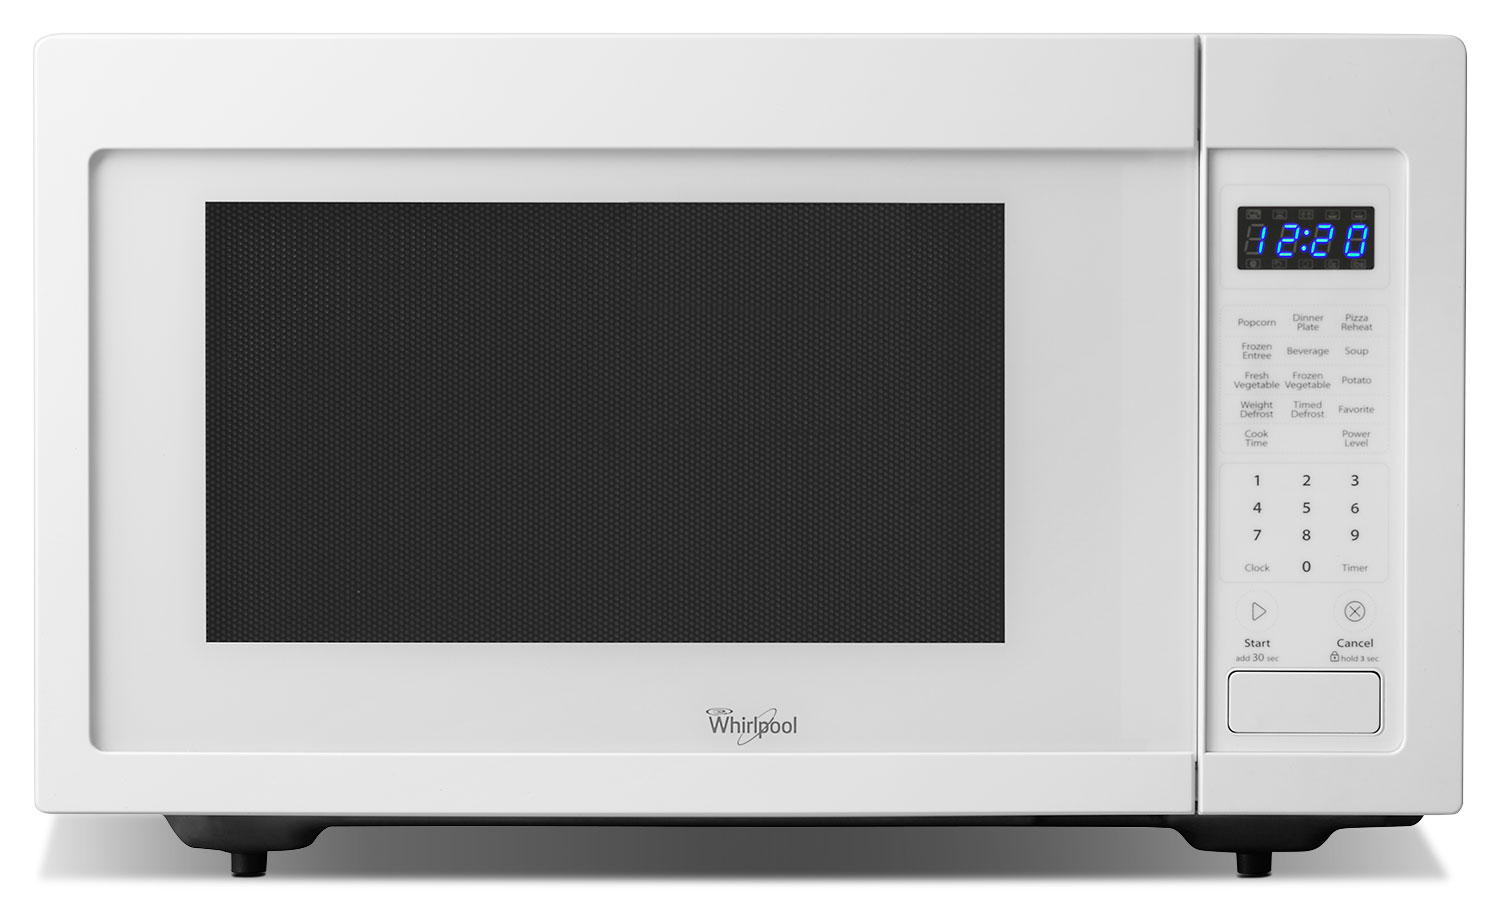 Cooking Products - Whirlpool White Countertop Microwave (1.6 Cu. Ft.) - YWMC30516DW